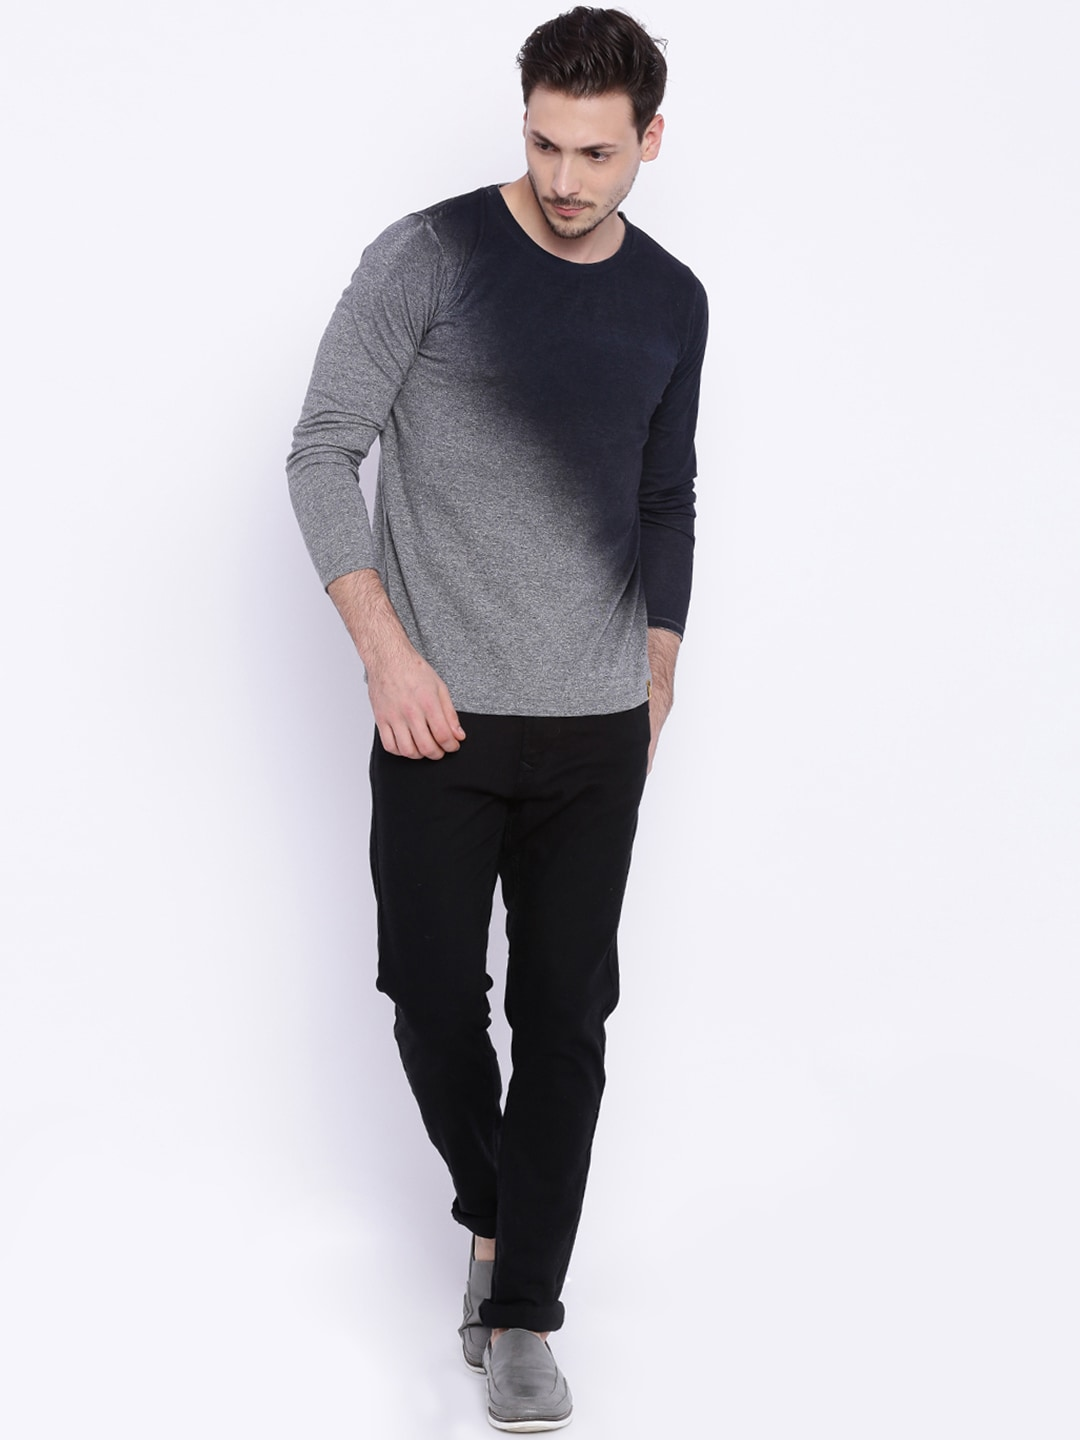 Long Sleeve T shirts For Men - Buy Mens Long Sleeve T shirts ...